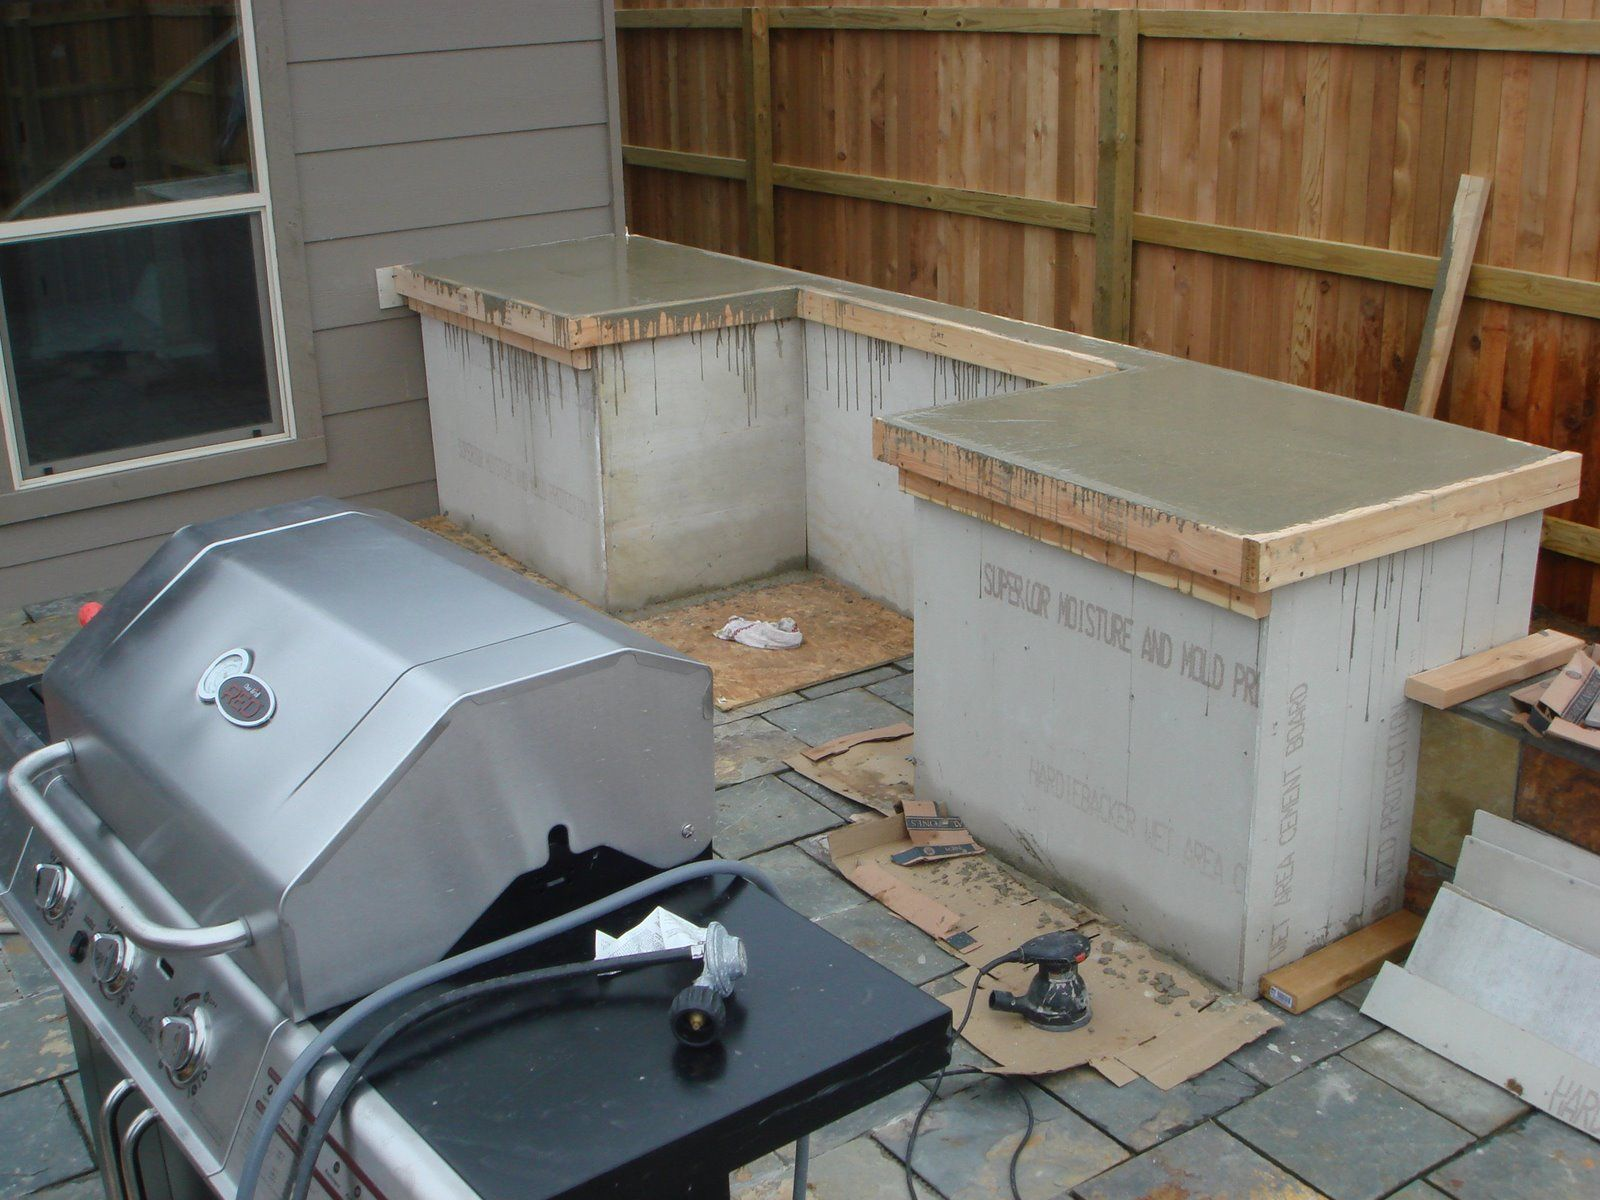 Simple Out Door Kitchen For Use With Standard Grill Build Outdoor Kitchen Outdoor Kitchen Plans Outdoor Grill Station